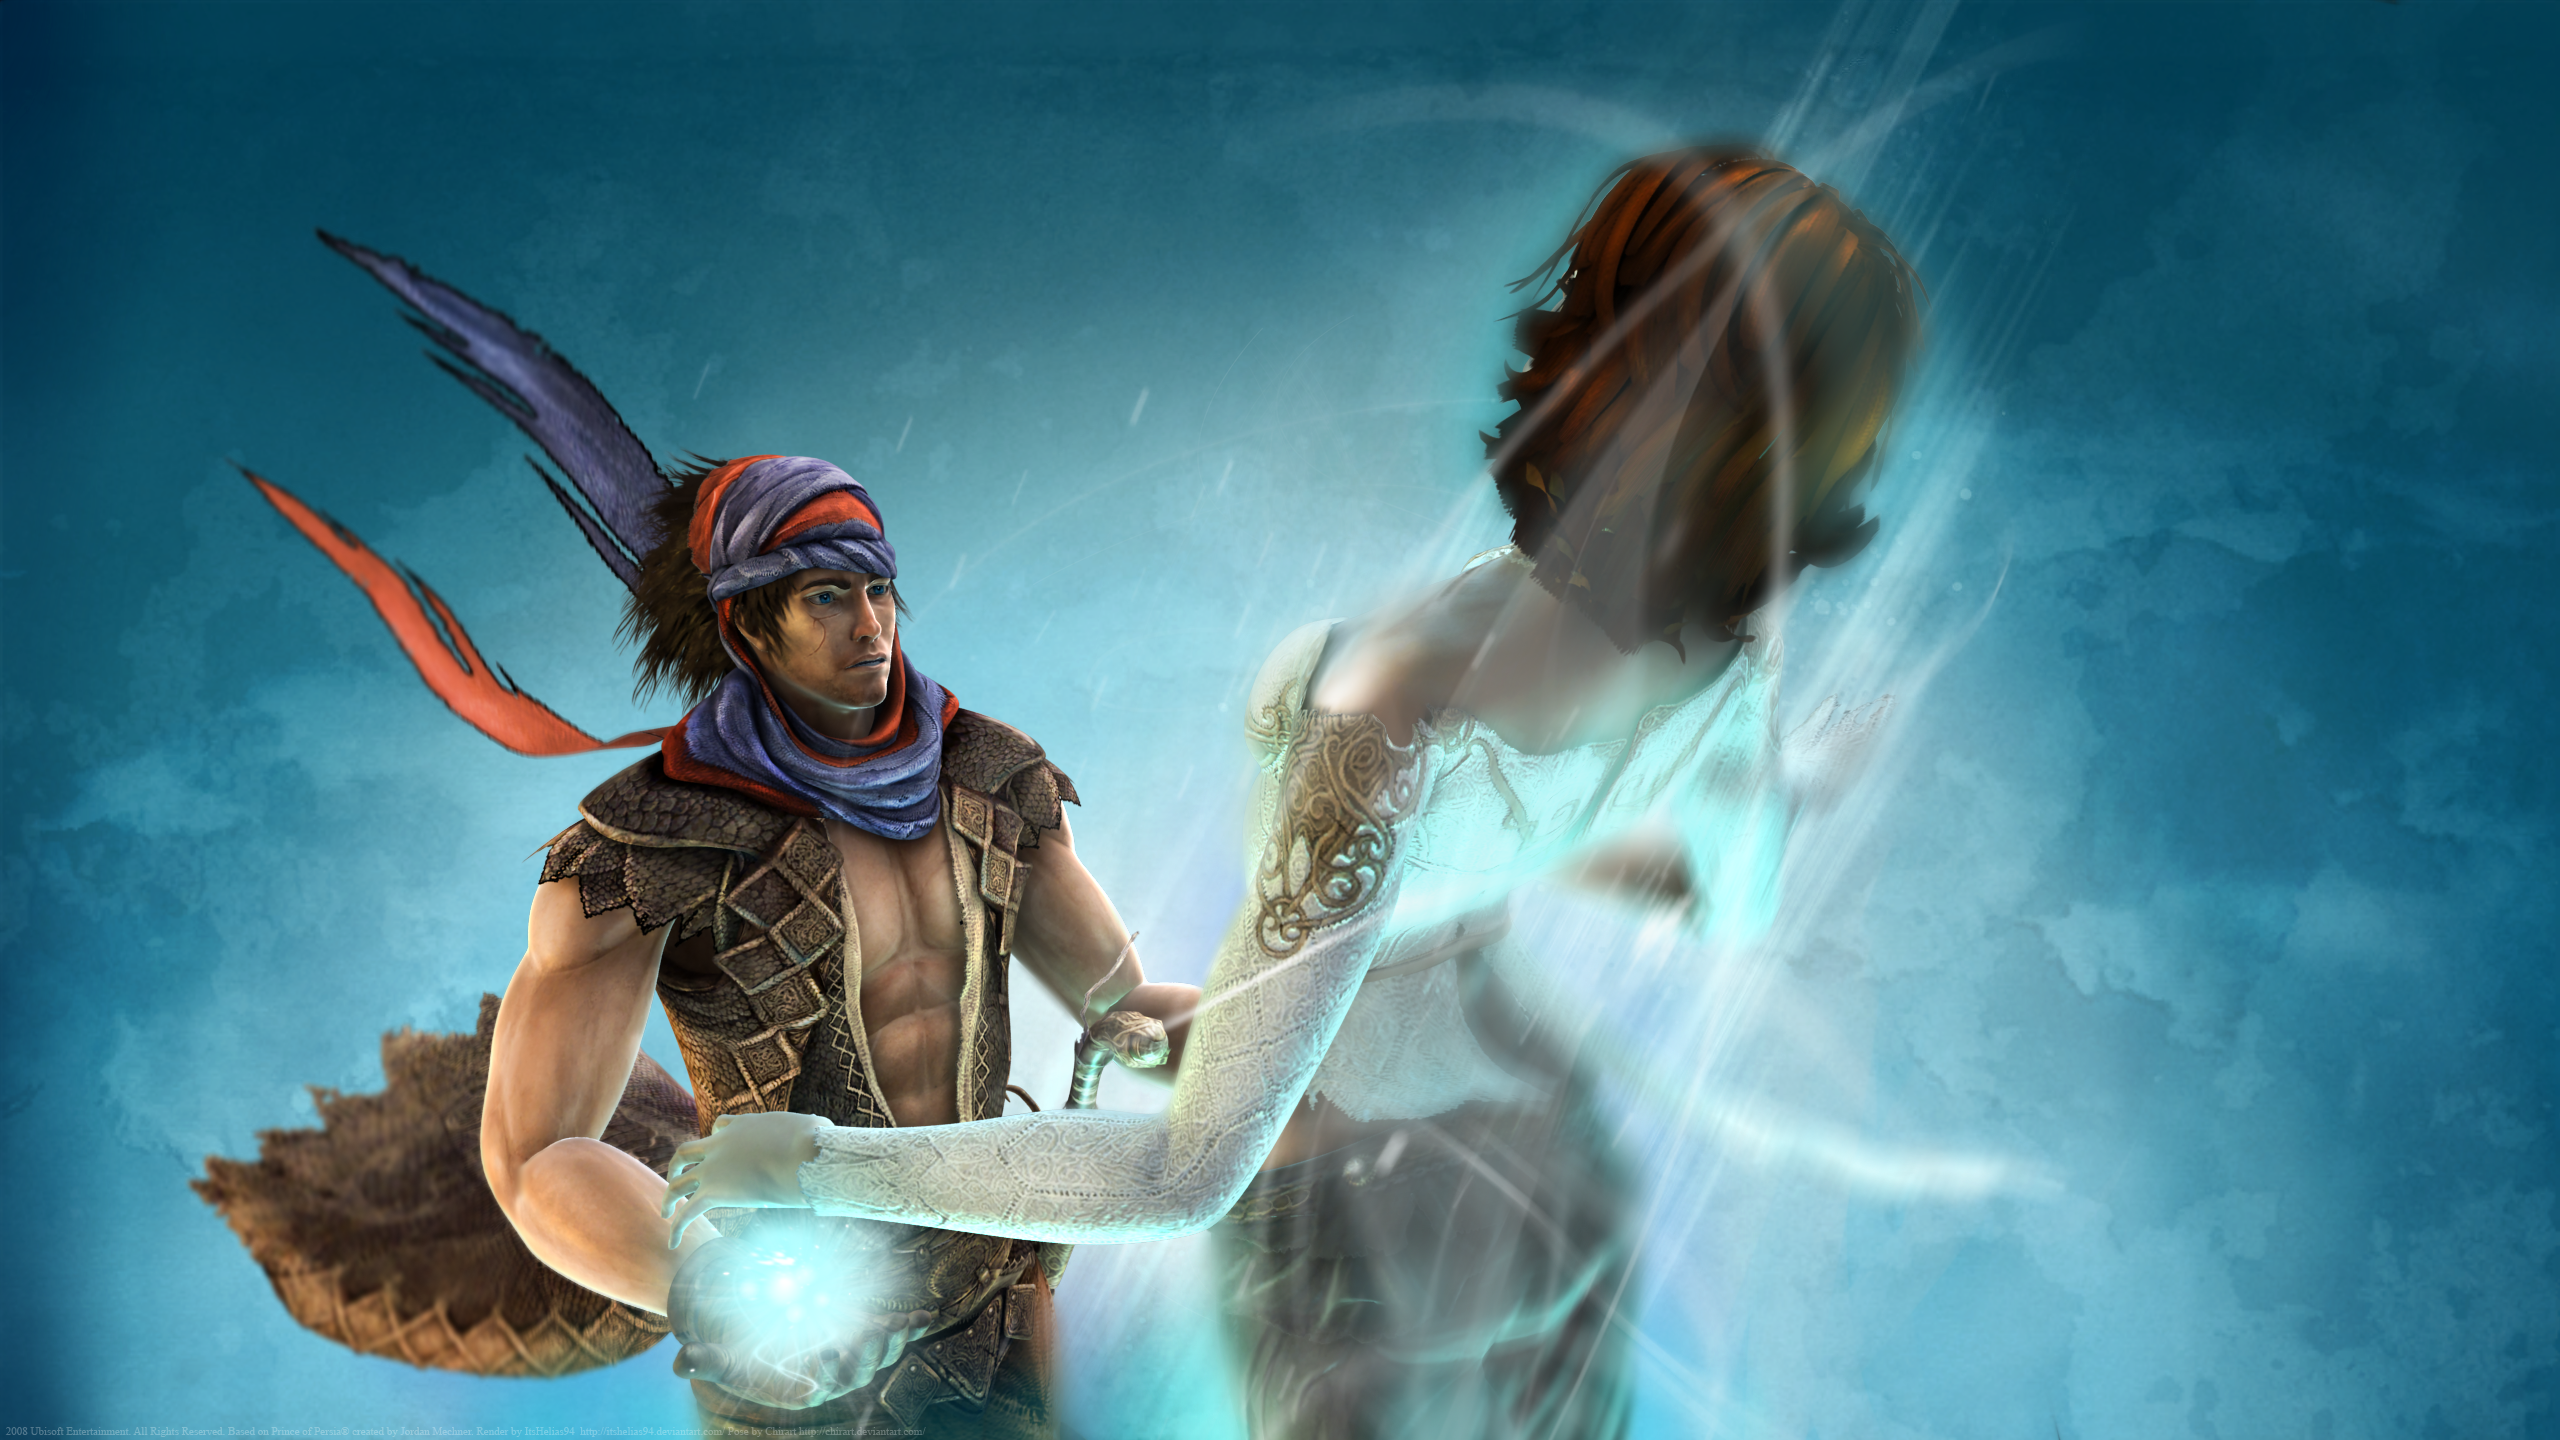 Prince Of Persia 08 Healing By Itshelias94 On Deviantart